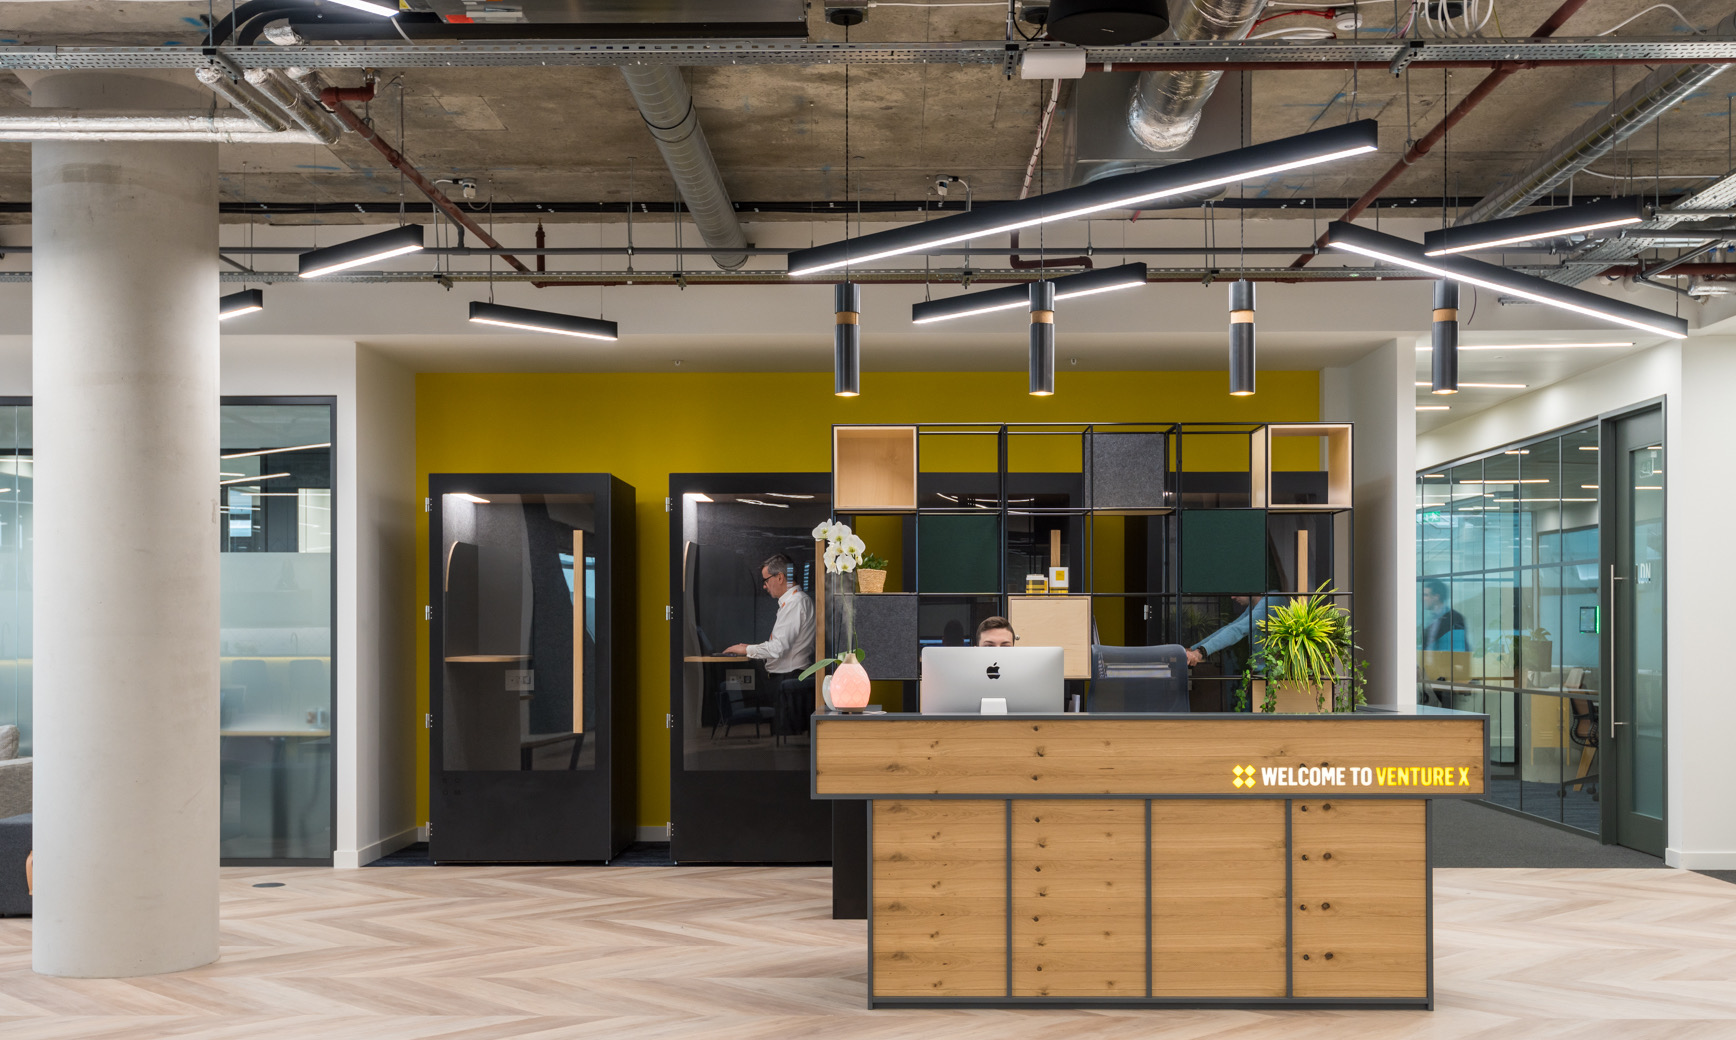 A Tour Of Venture X's New London Coworking Space